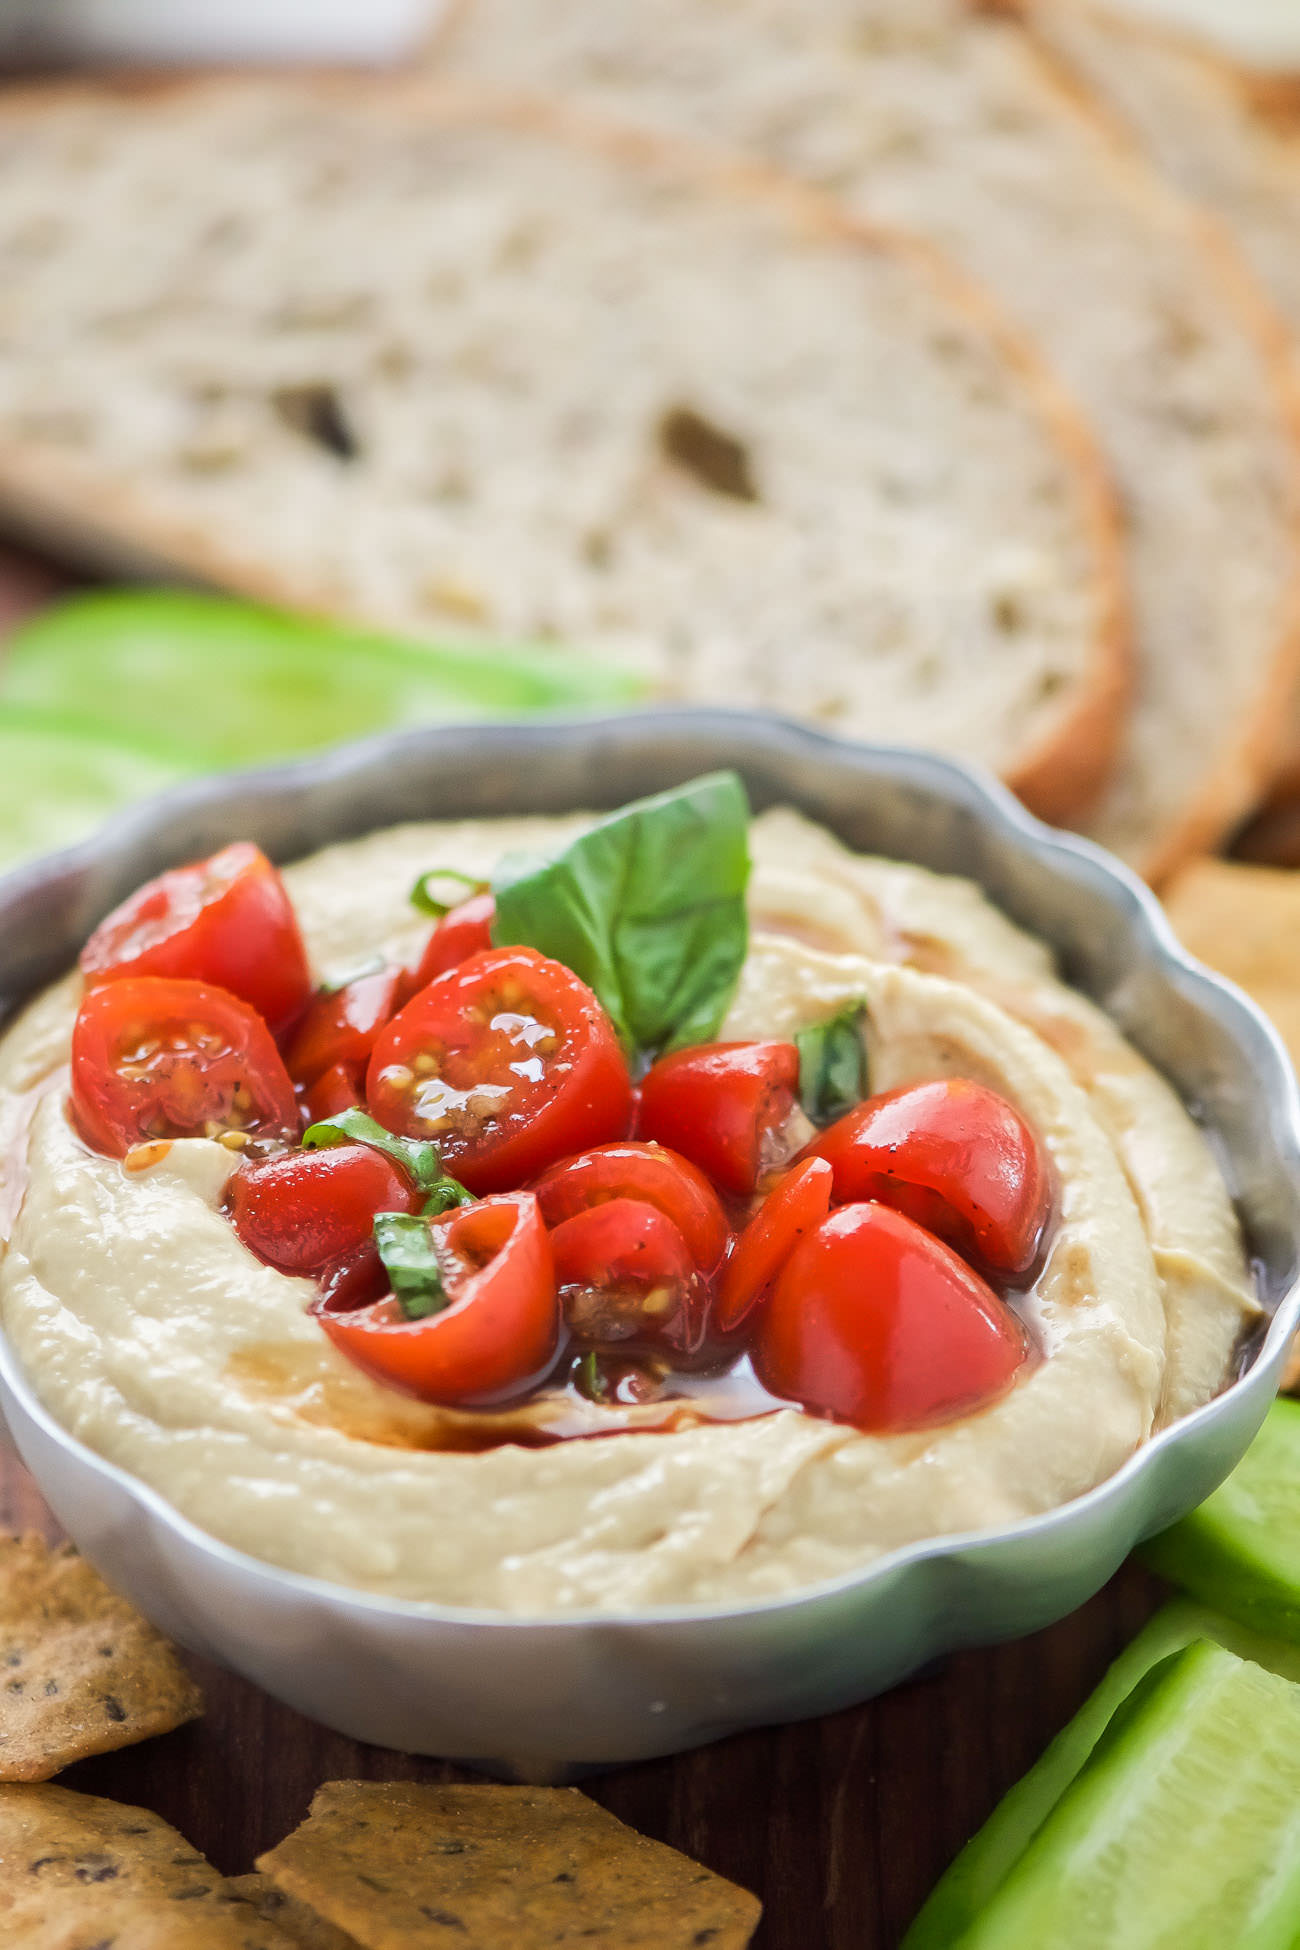 This 5 Minute Bruschetta Hummus is the ideal summer appetizer! The classic Italian flavors shine through with the homemade cherry tomato and garlic bruschetta that pairs perfectly with creamy hummus!